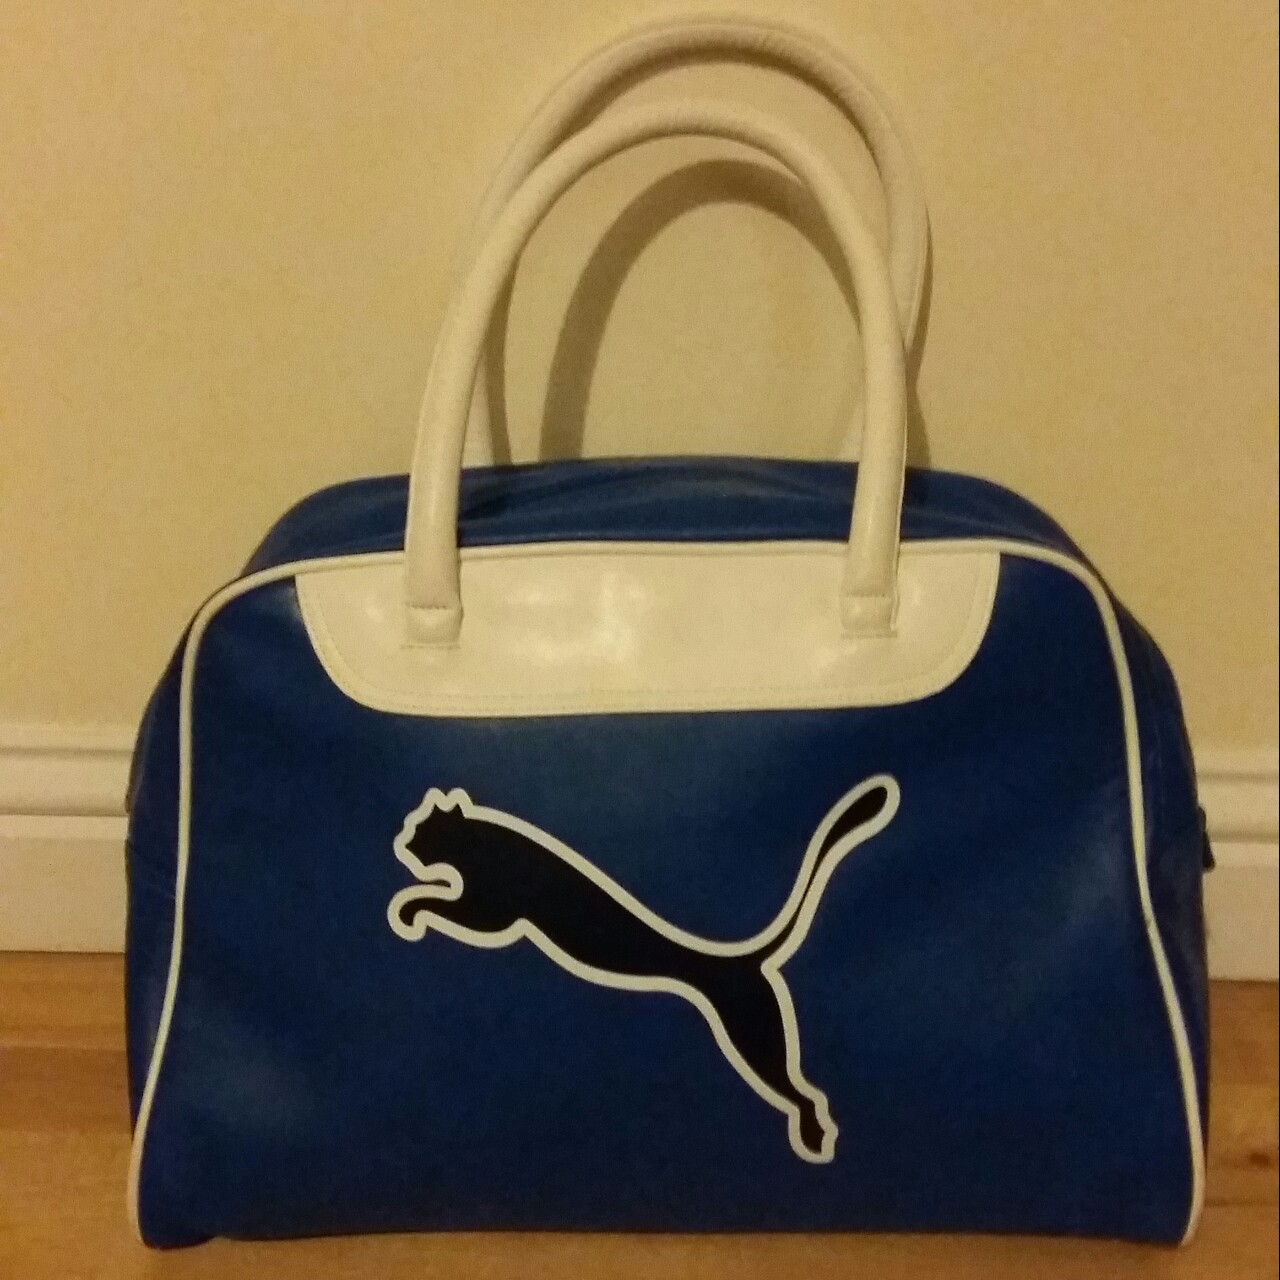 38d15b5fa8 Vintage retro Puma sports faux leather gym bag. Condition - Depop